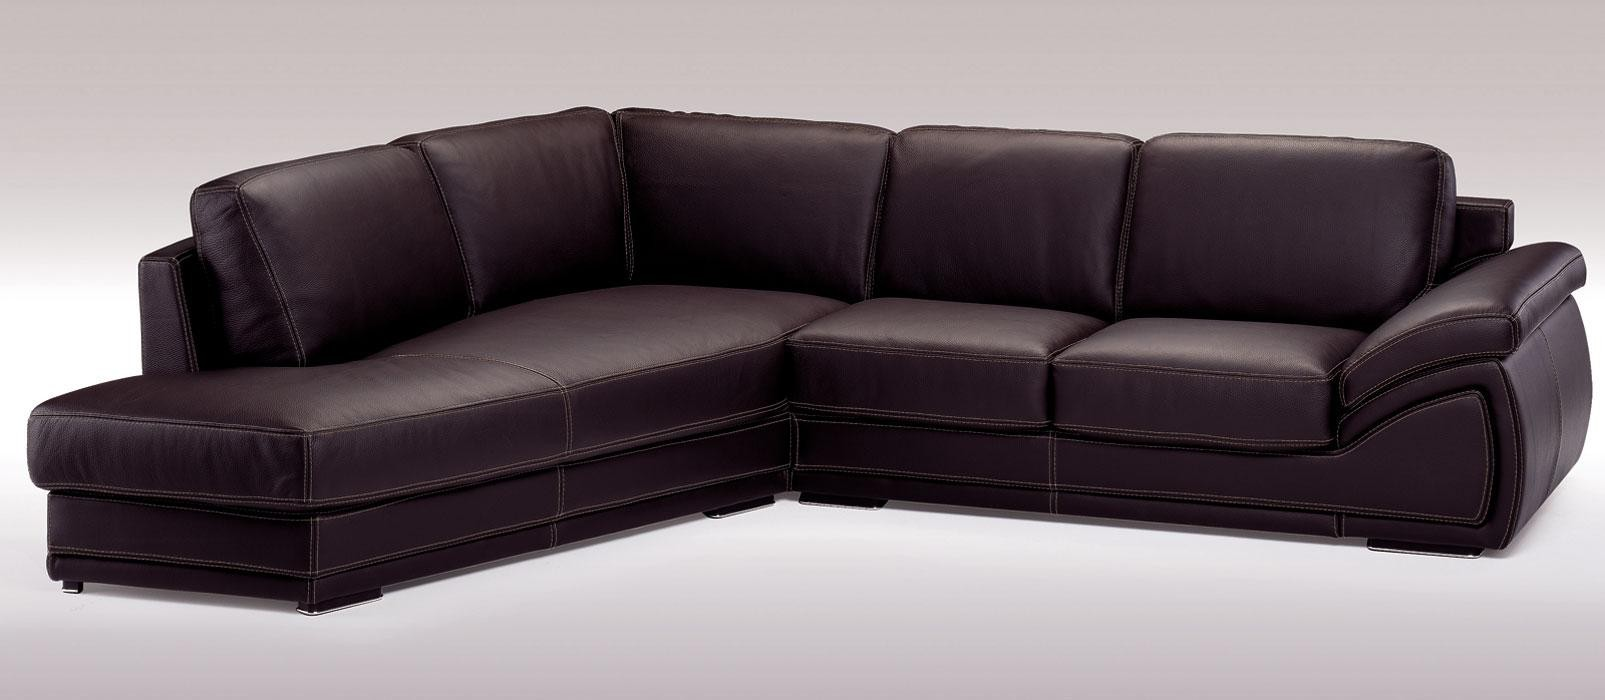 Holiday Espresso Italian Leather Sectional Sofa Buy From